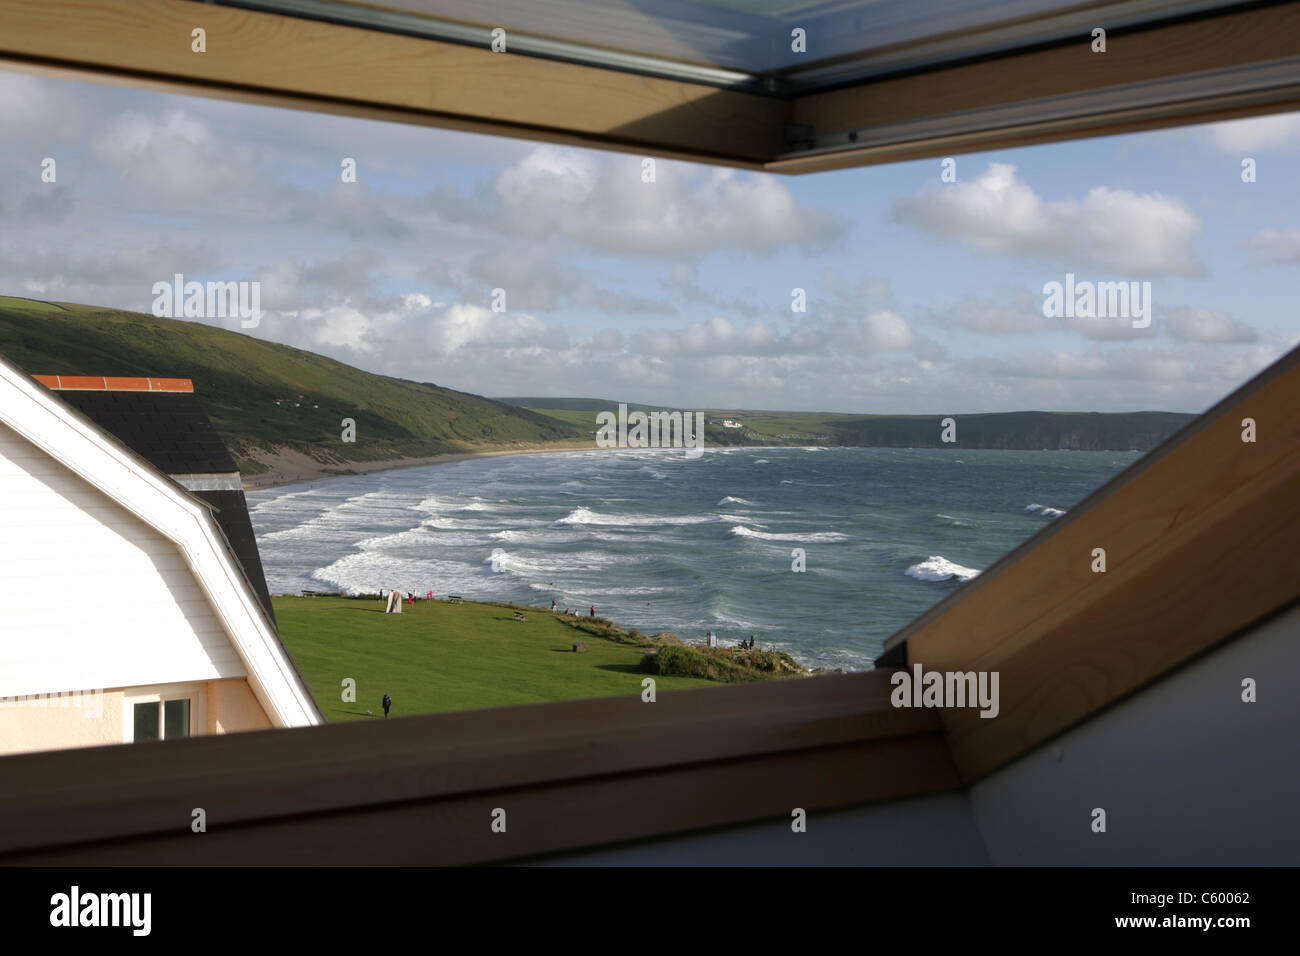 View over Woolacombe Beach in Devon, England from a beach front apartment window in the summer of 2014 - Stock Image